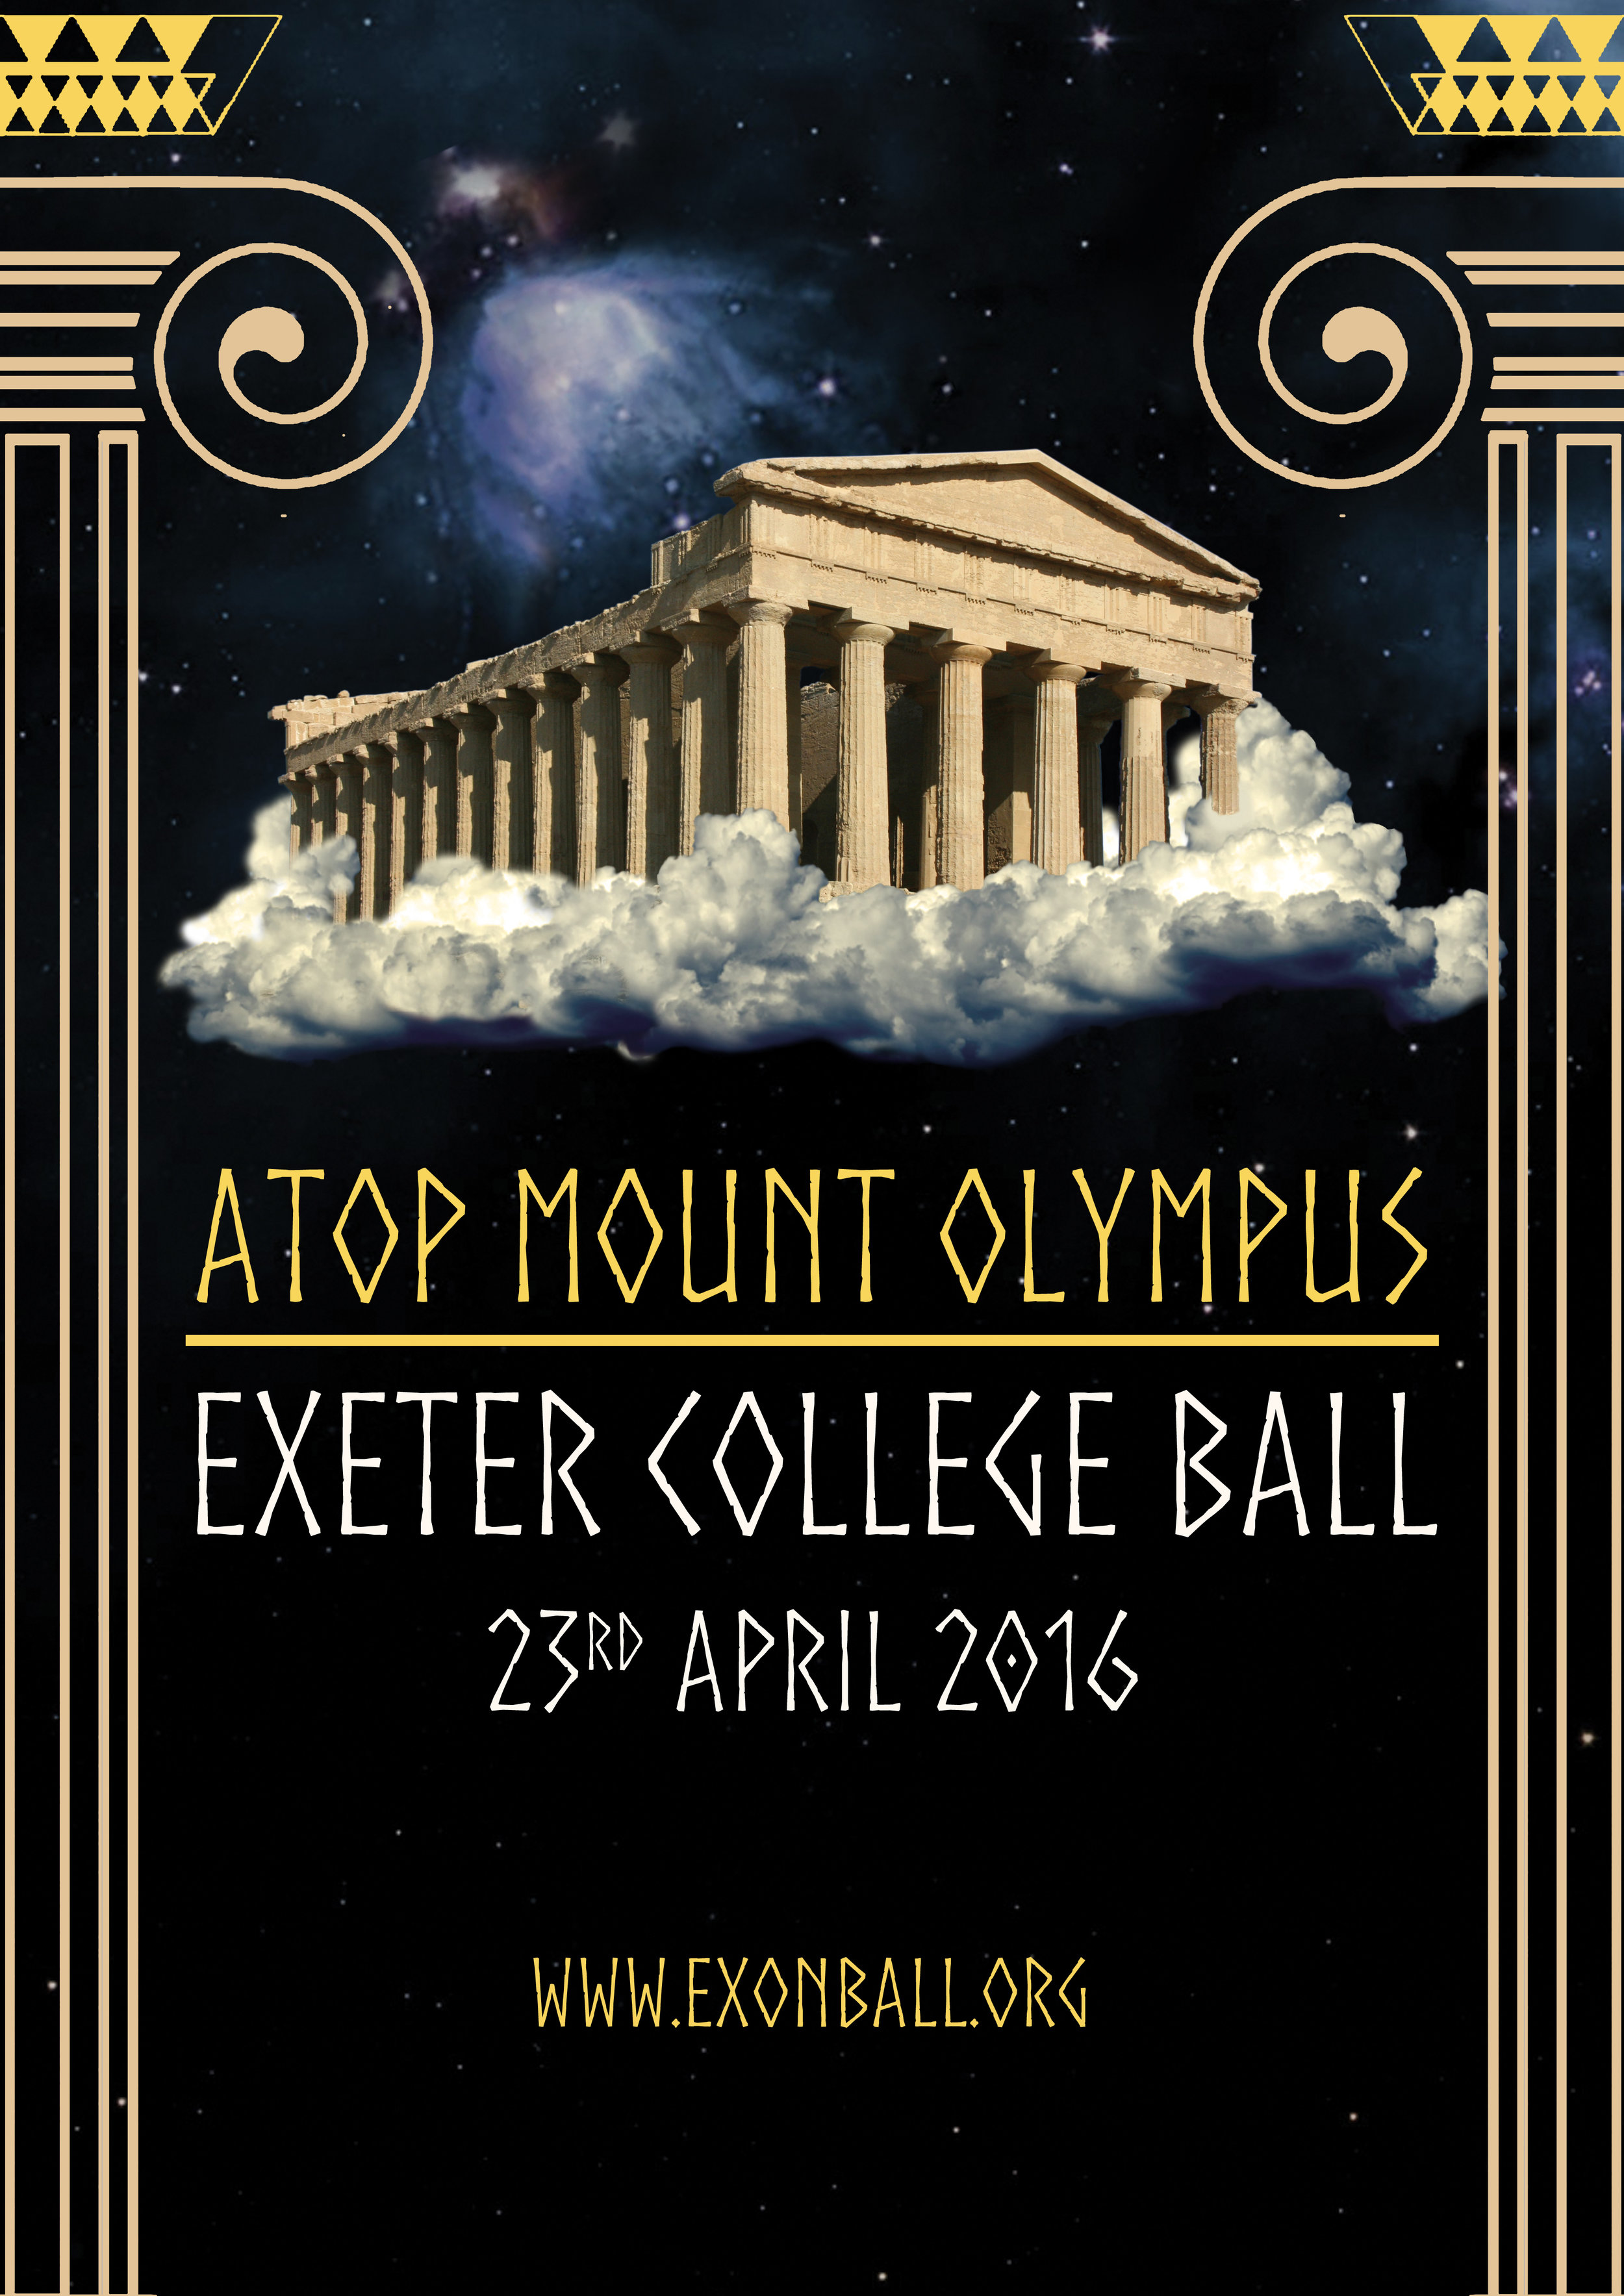 EXETER COLLEGE BALL 2016.jpg